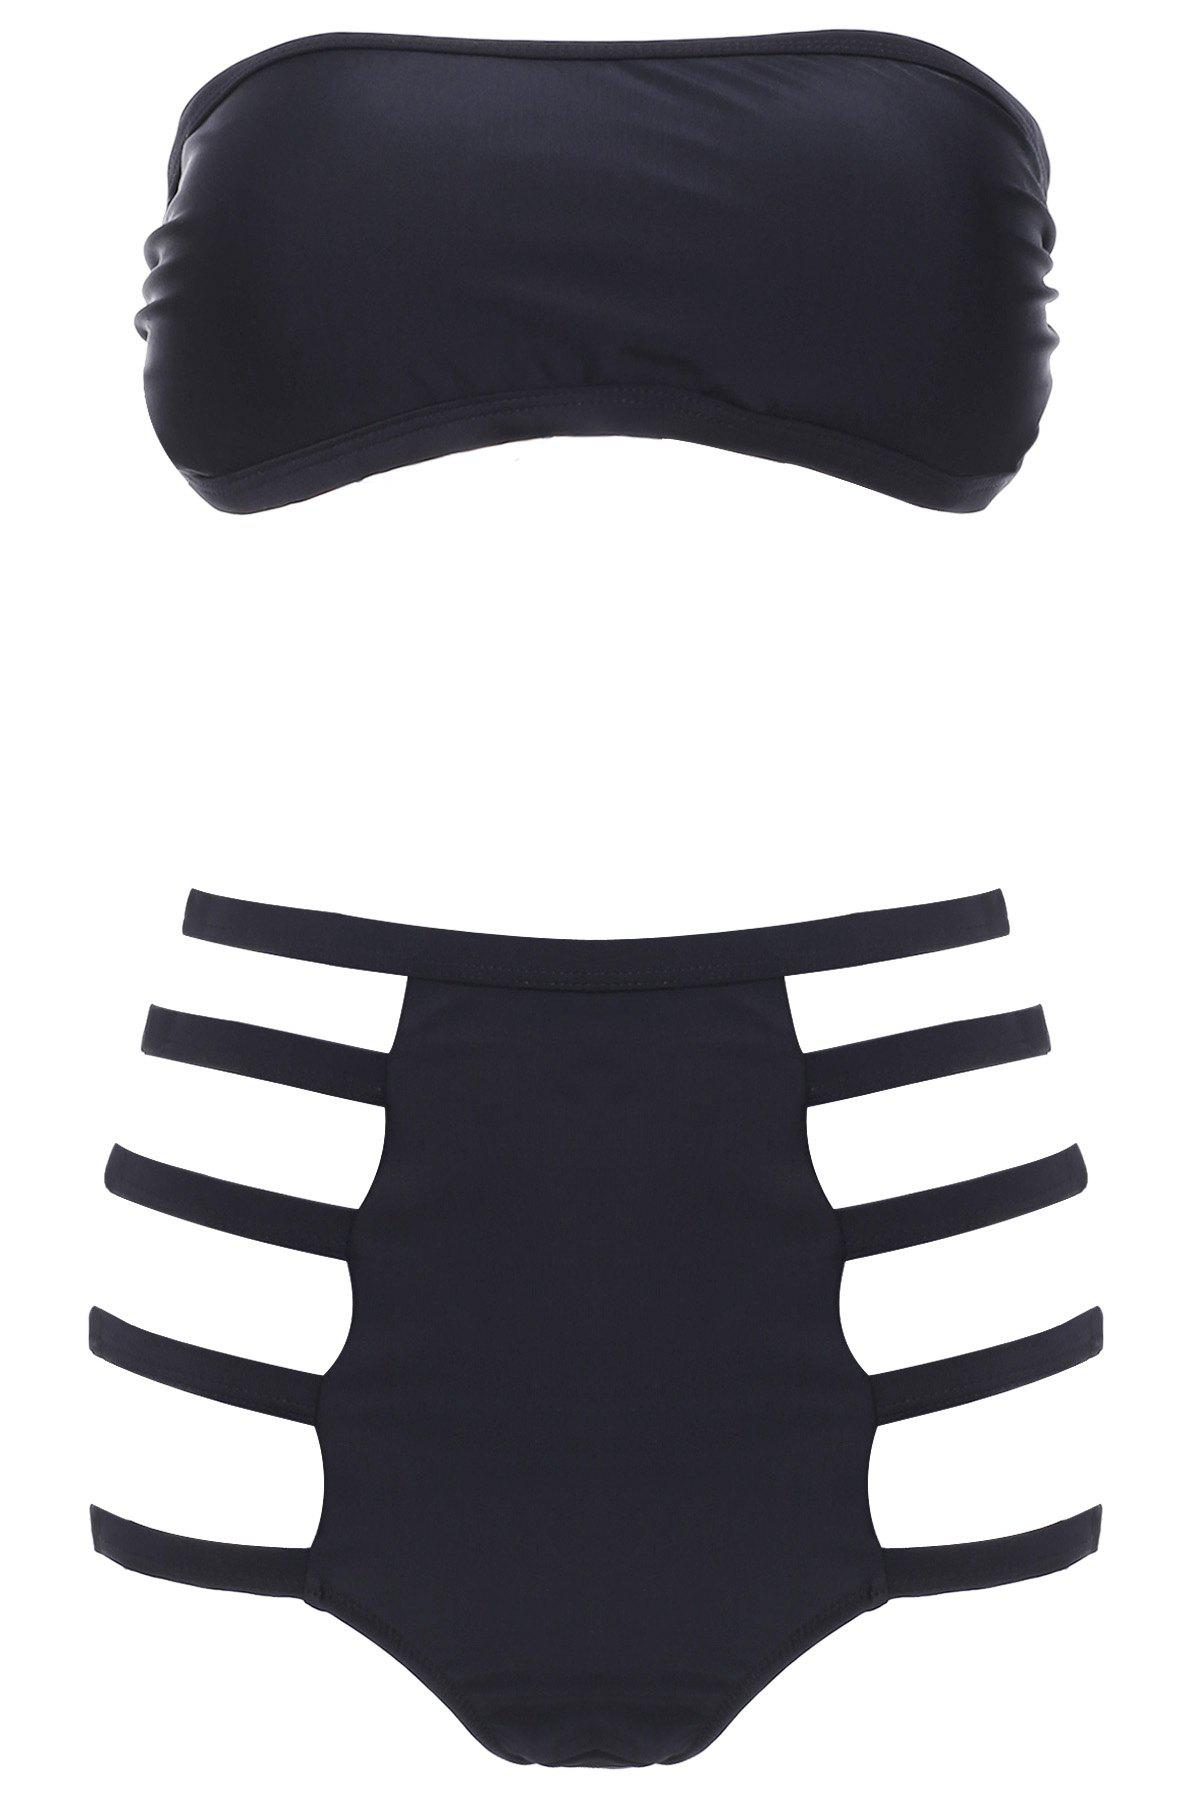 Sexy Strapless High-Waisted Cut Out Solid Color Women's Bikini Set - BLACK S